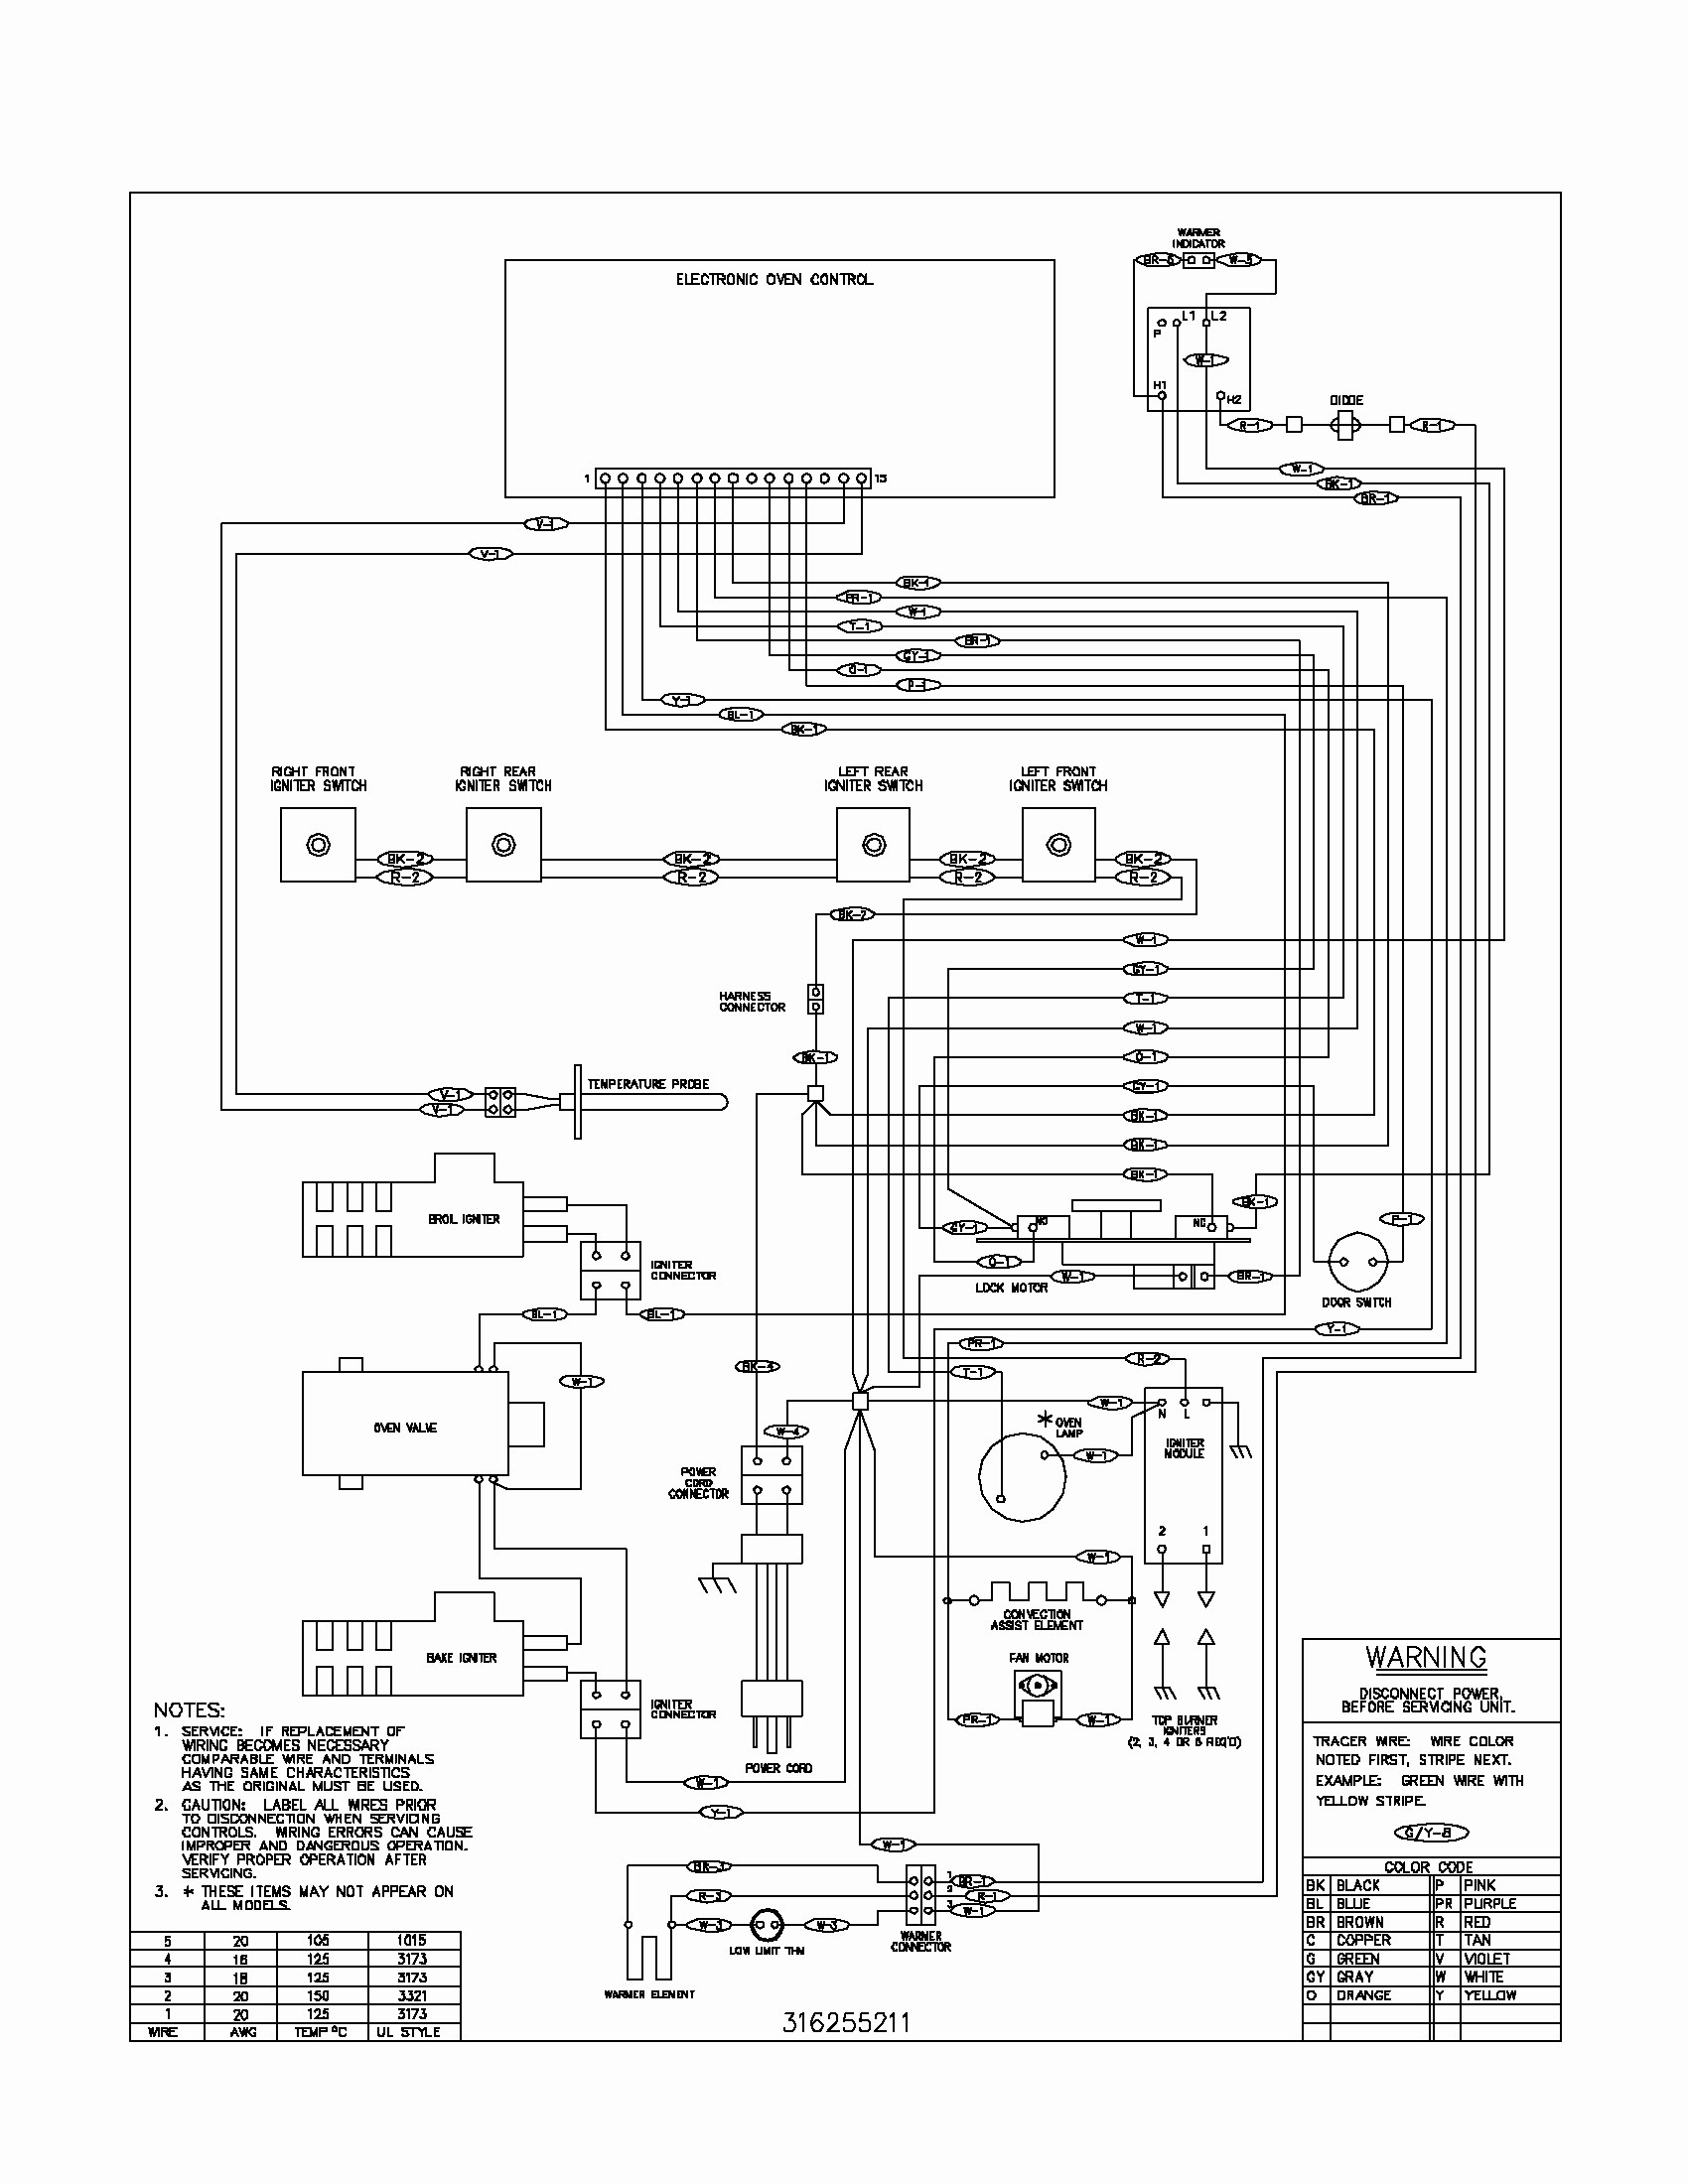 powder coat oven wiring diagram collection wiring diagram sample for powder  coating oven wiring diagram powder